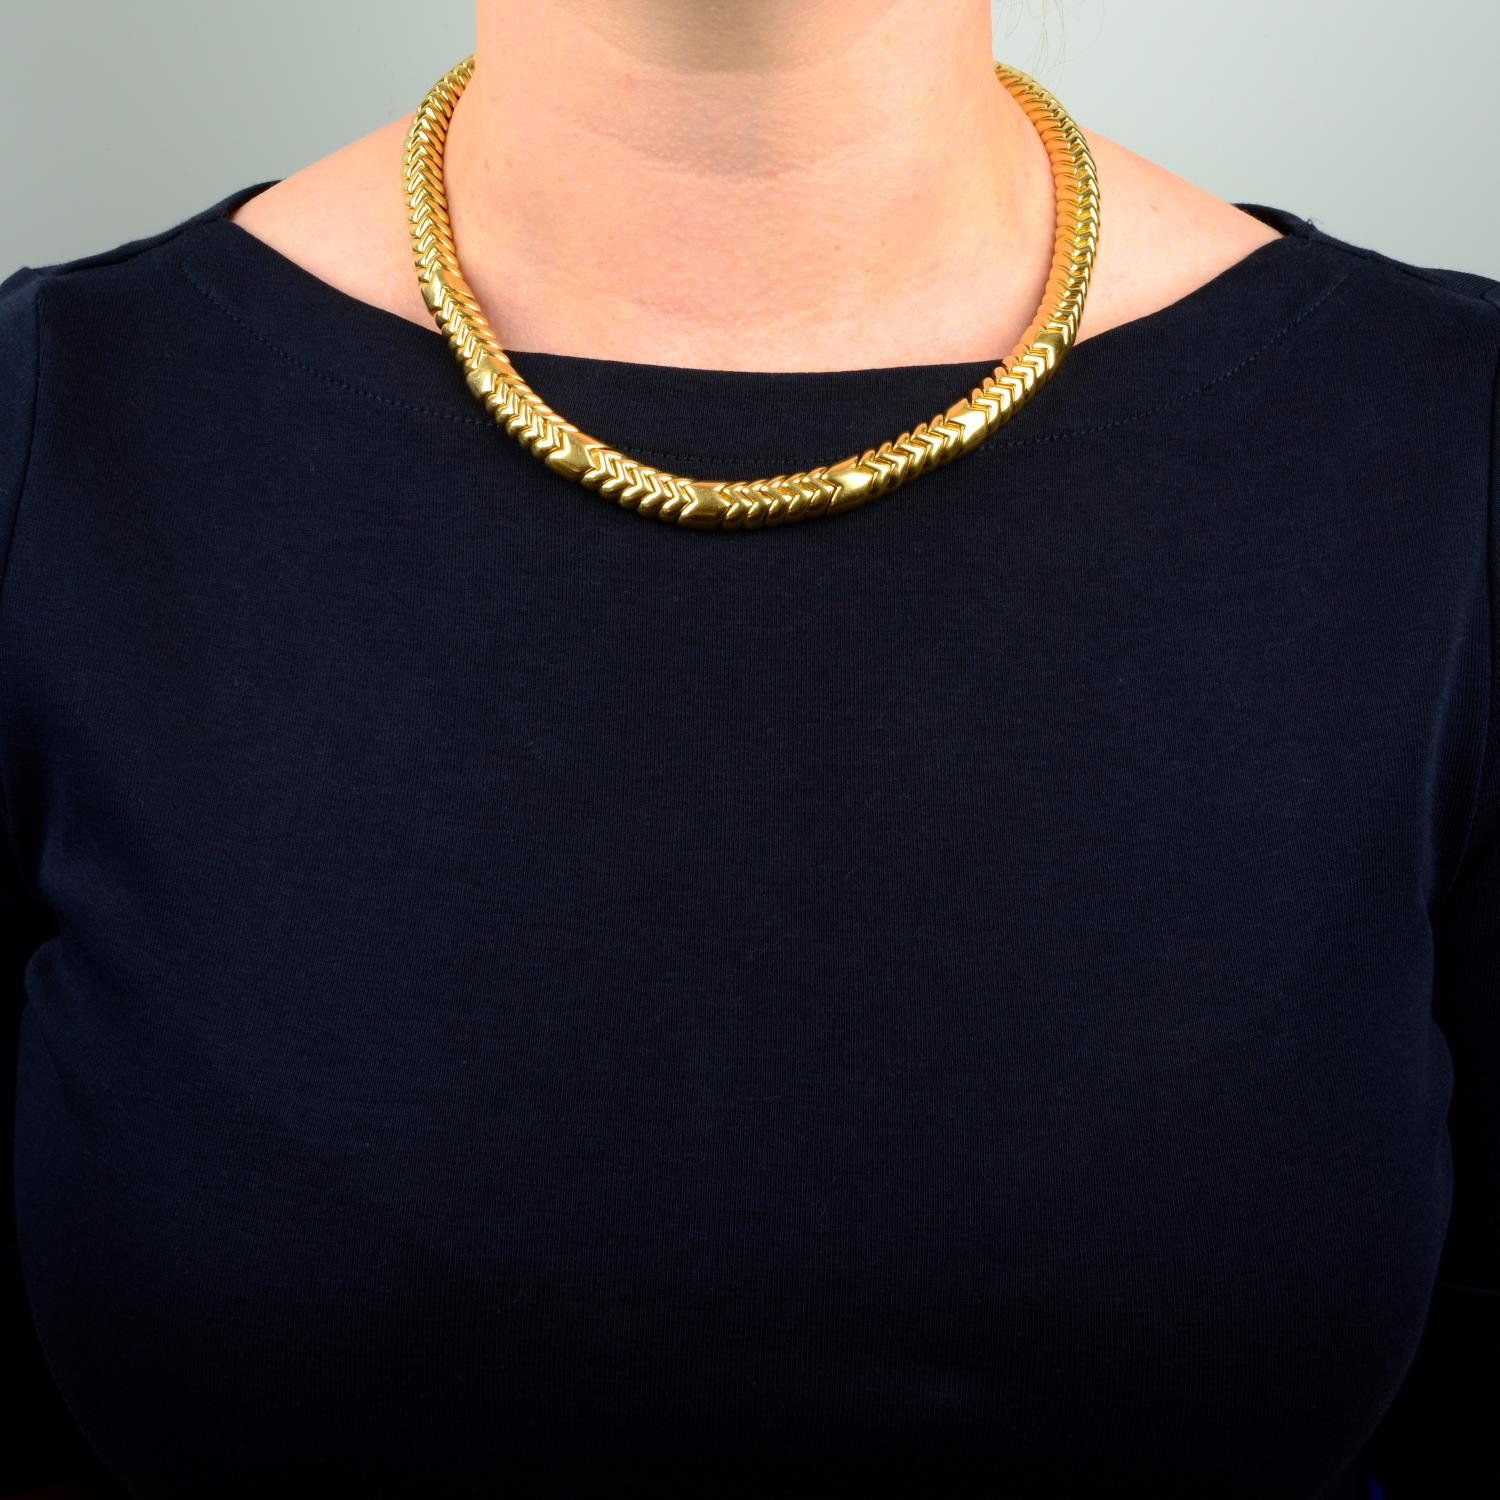 An 18ct gold 'Spiga' necklace, by Bulgari. - Image 3 of 6